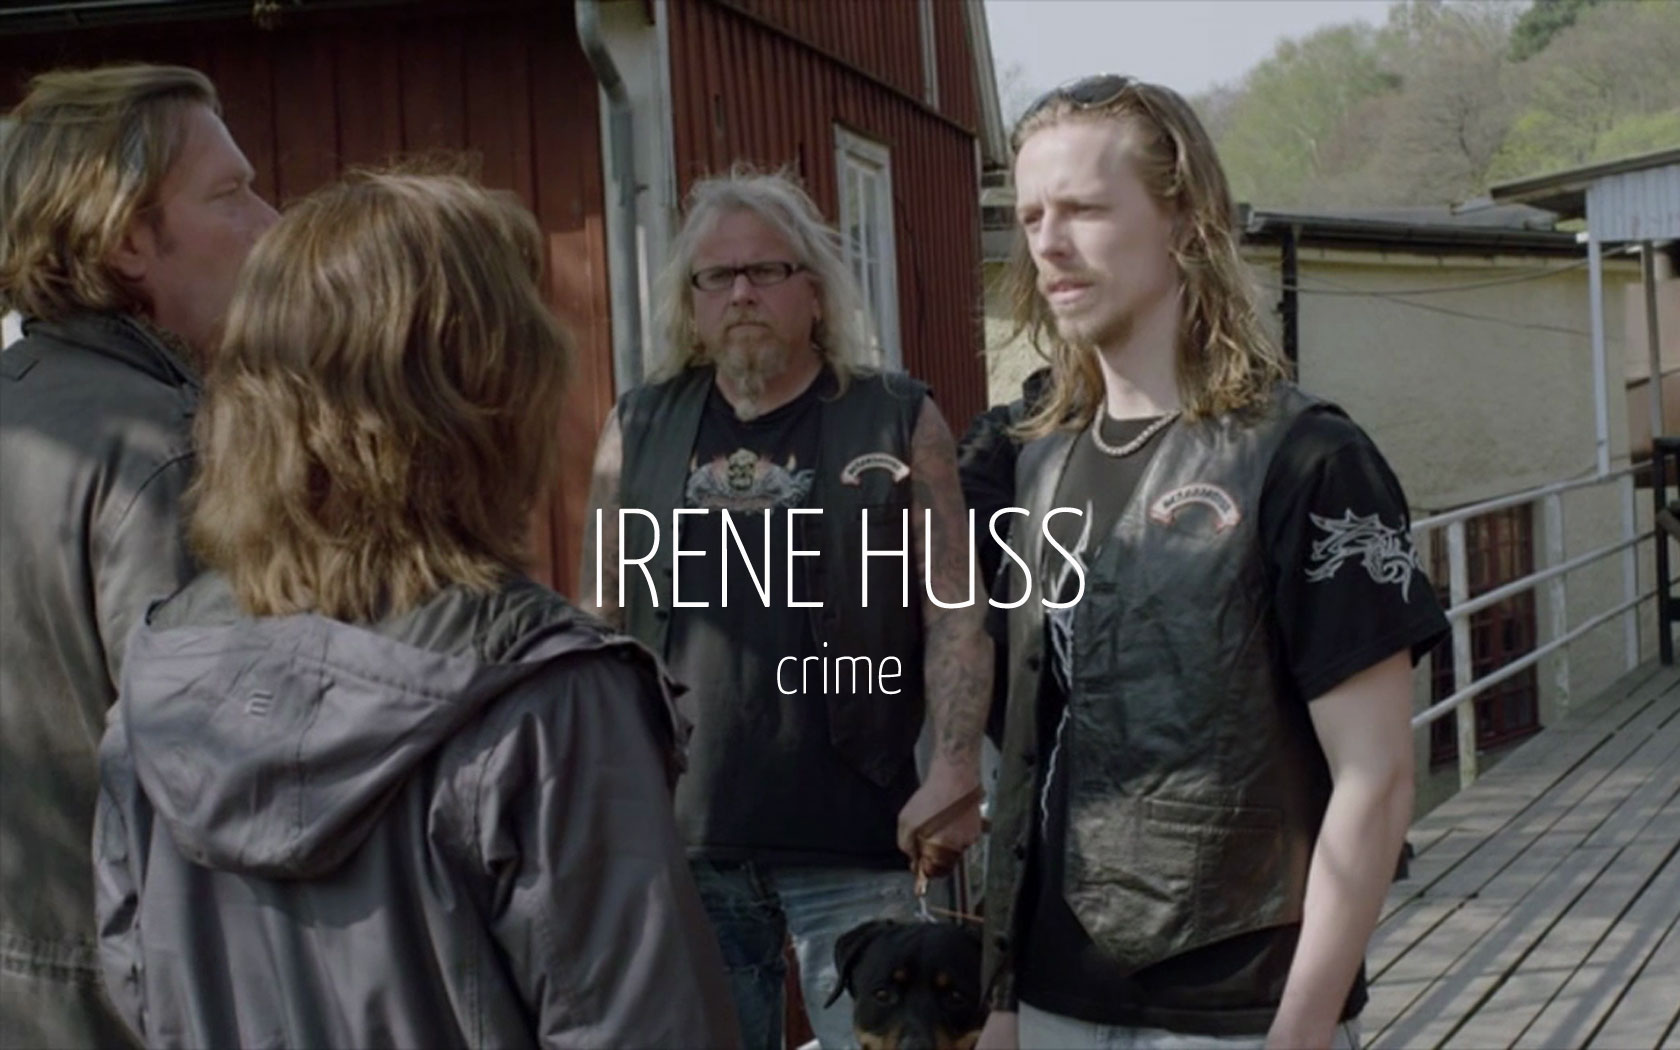 Scandinavian actor Fredrik Wagner as biker in criminal drama film Irene Huss with Dag Malmberg